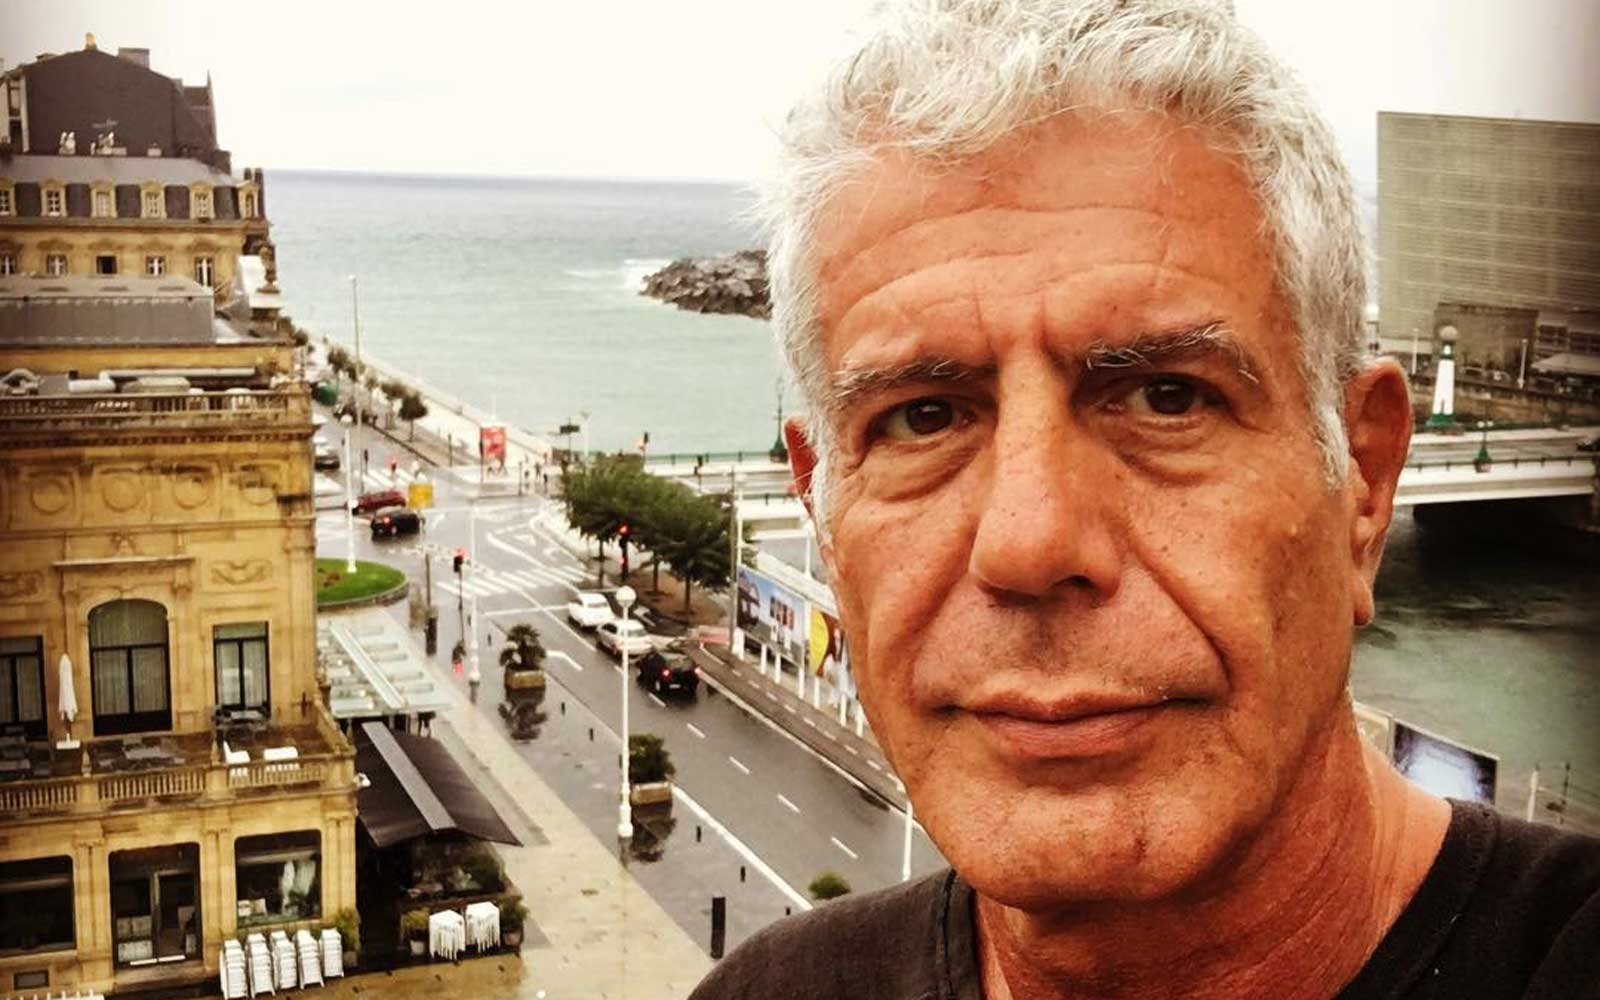 Anthony Bourdain Admits He's Trying to Make You Jealous on Instagram